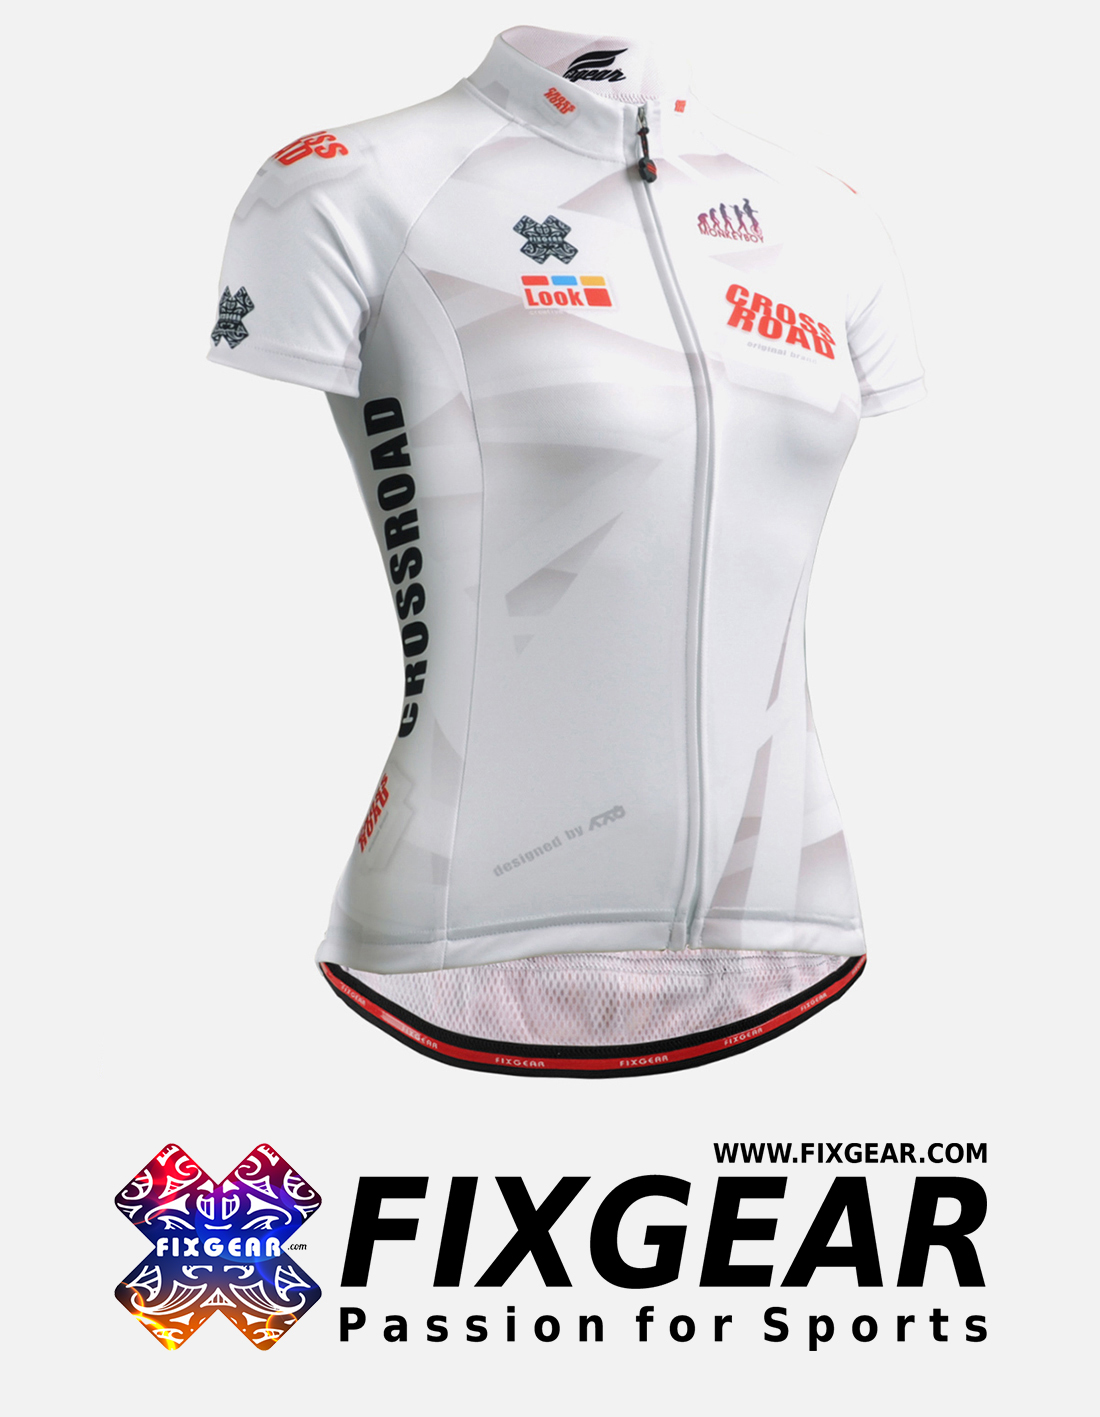 FIXGEAR CS-W1402 Women's Short Sleeve Jersey